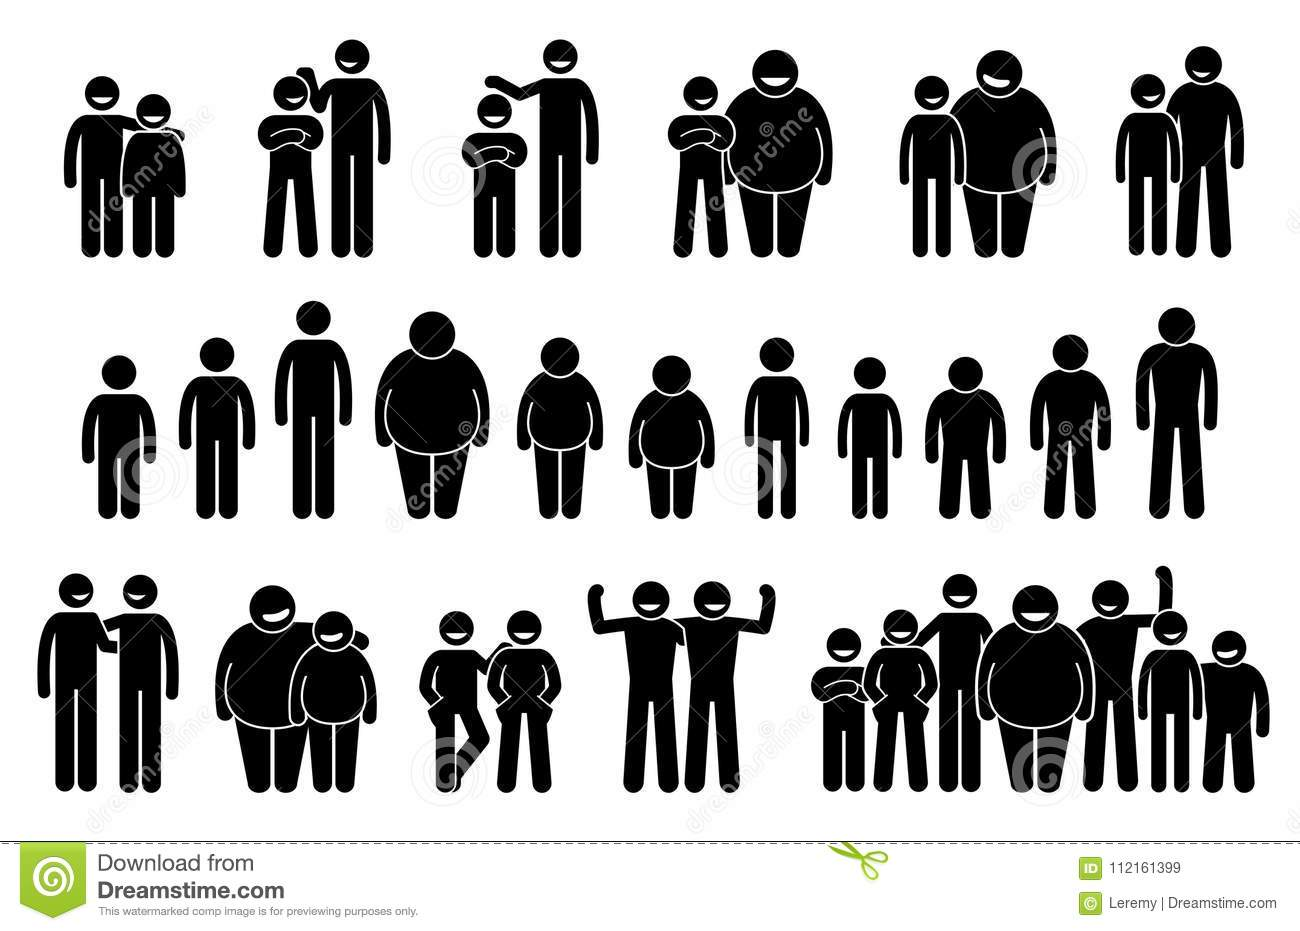 People And Man Of Different Body Sizes And Heights Icons. Stock.